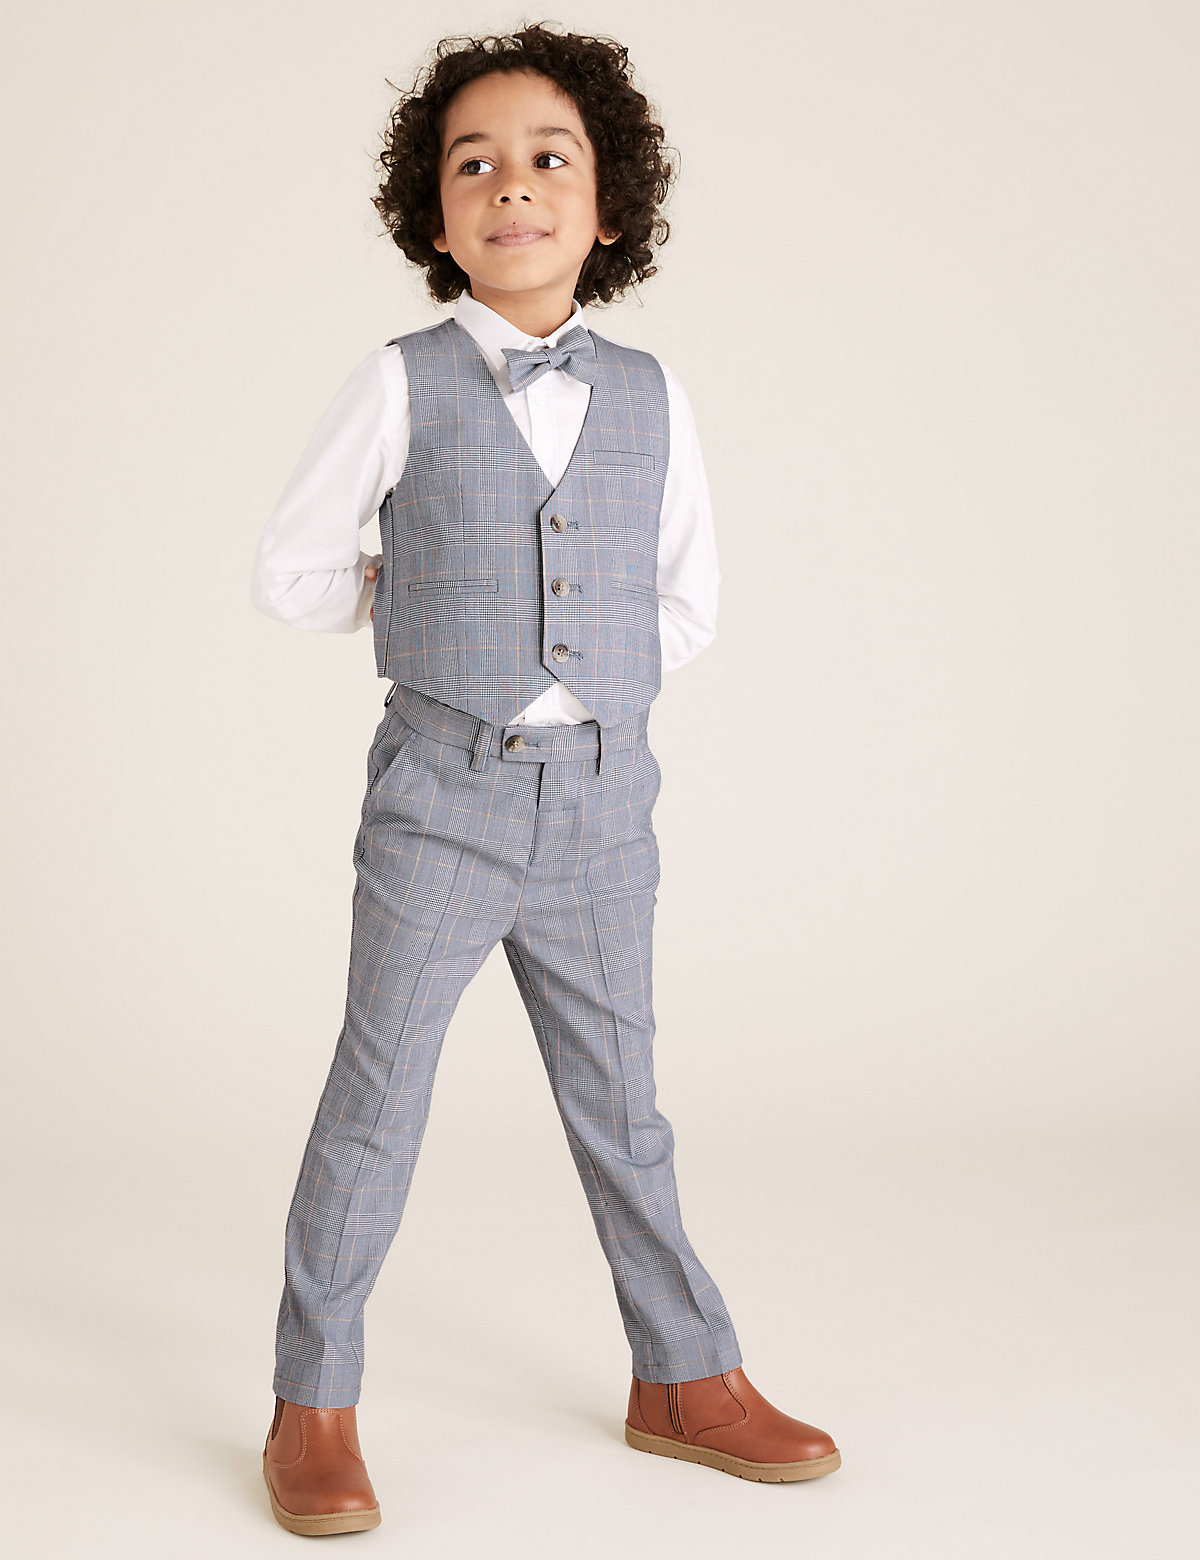 4 Piece Checked Suit Outfit (2-7 Yrs)